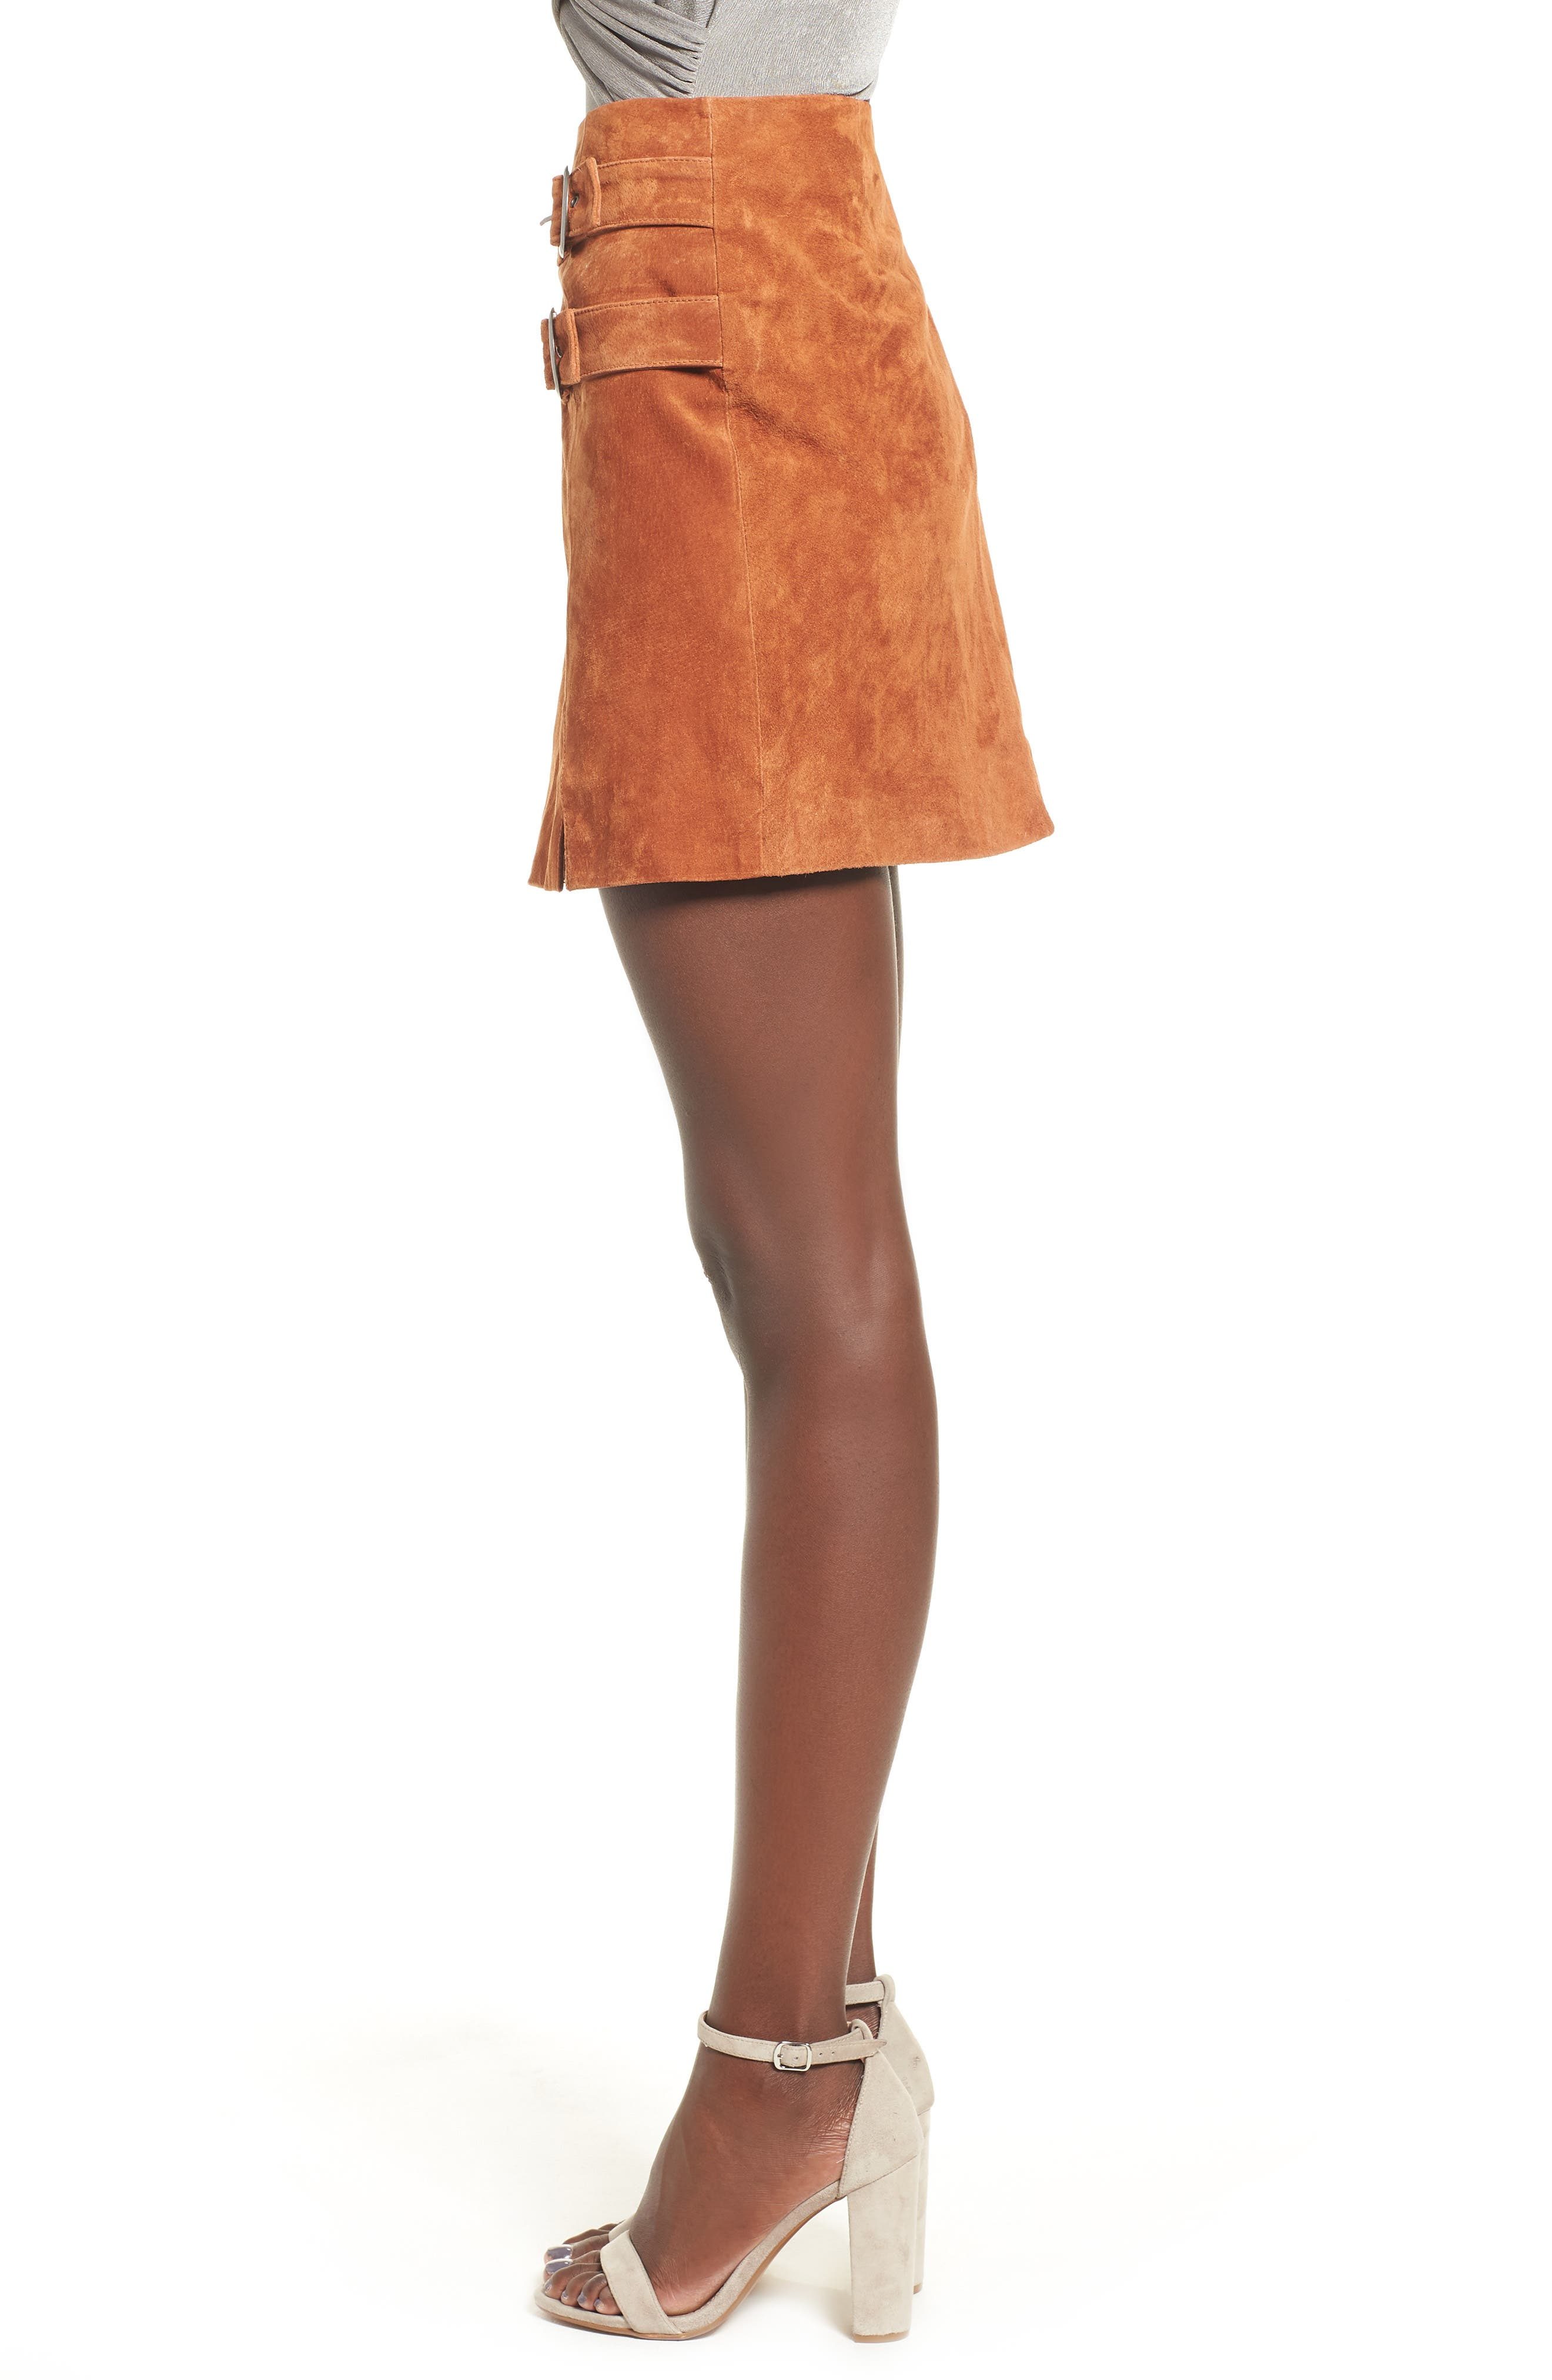 BLANKNYC, Double Buckle Suede Skirt, Alternate thumbnail 3, color, 250